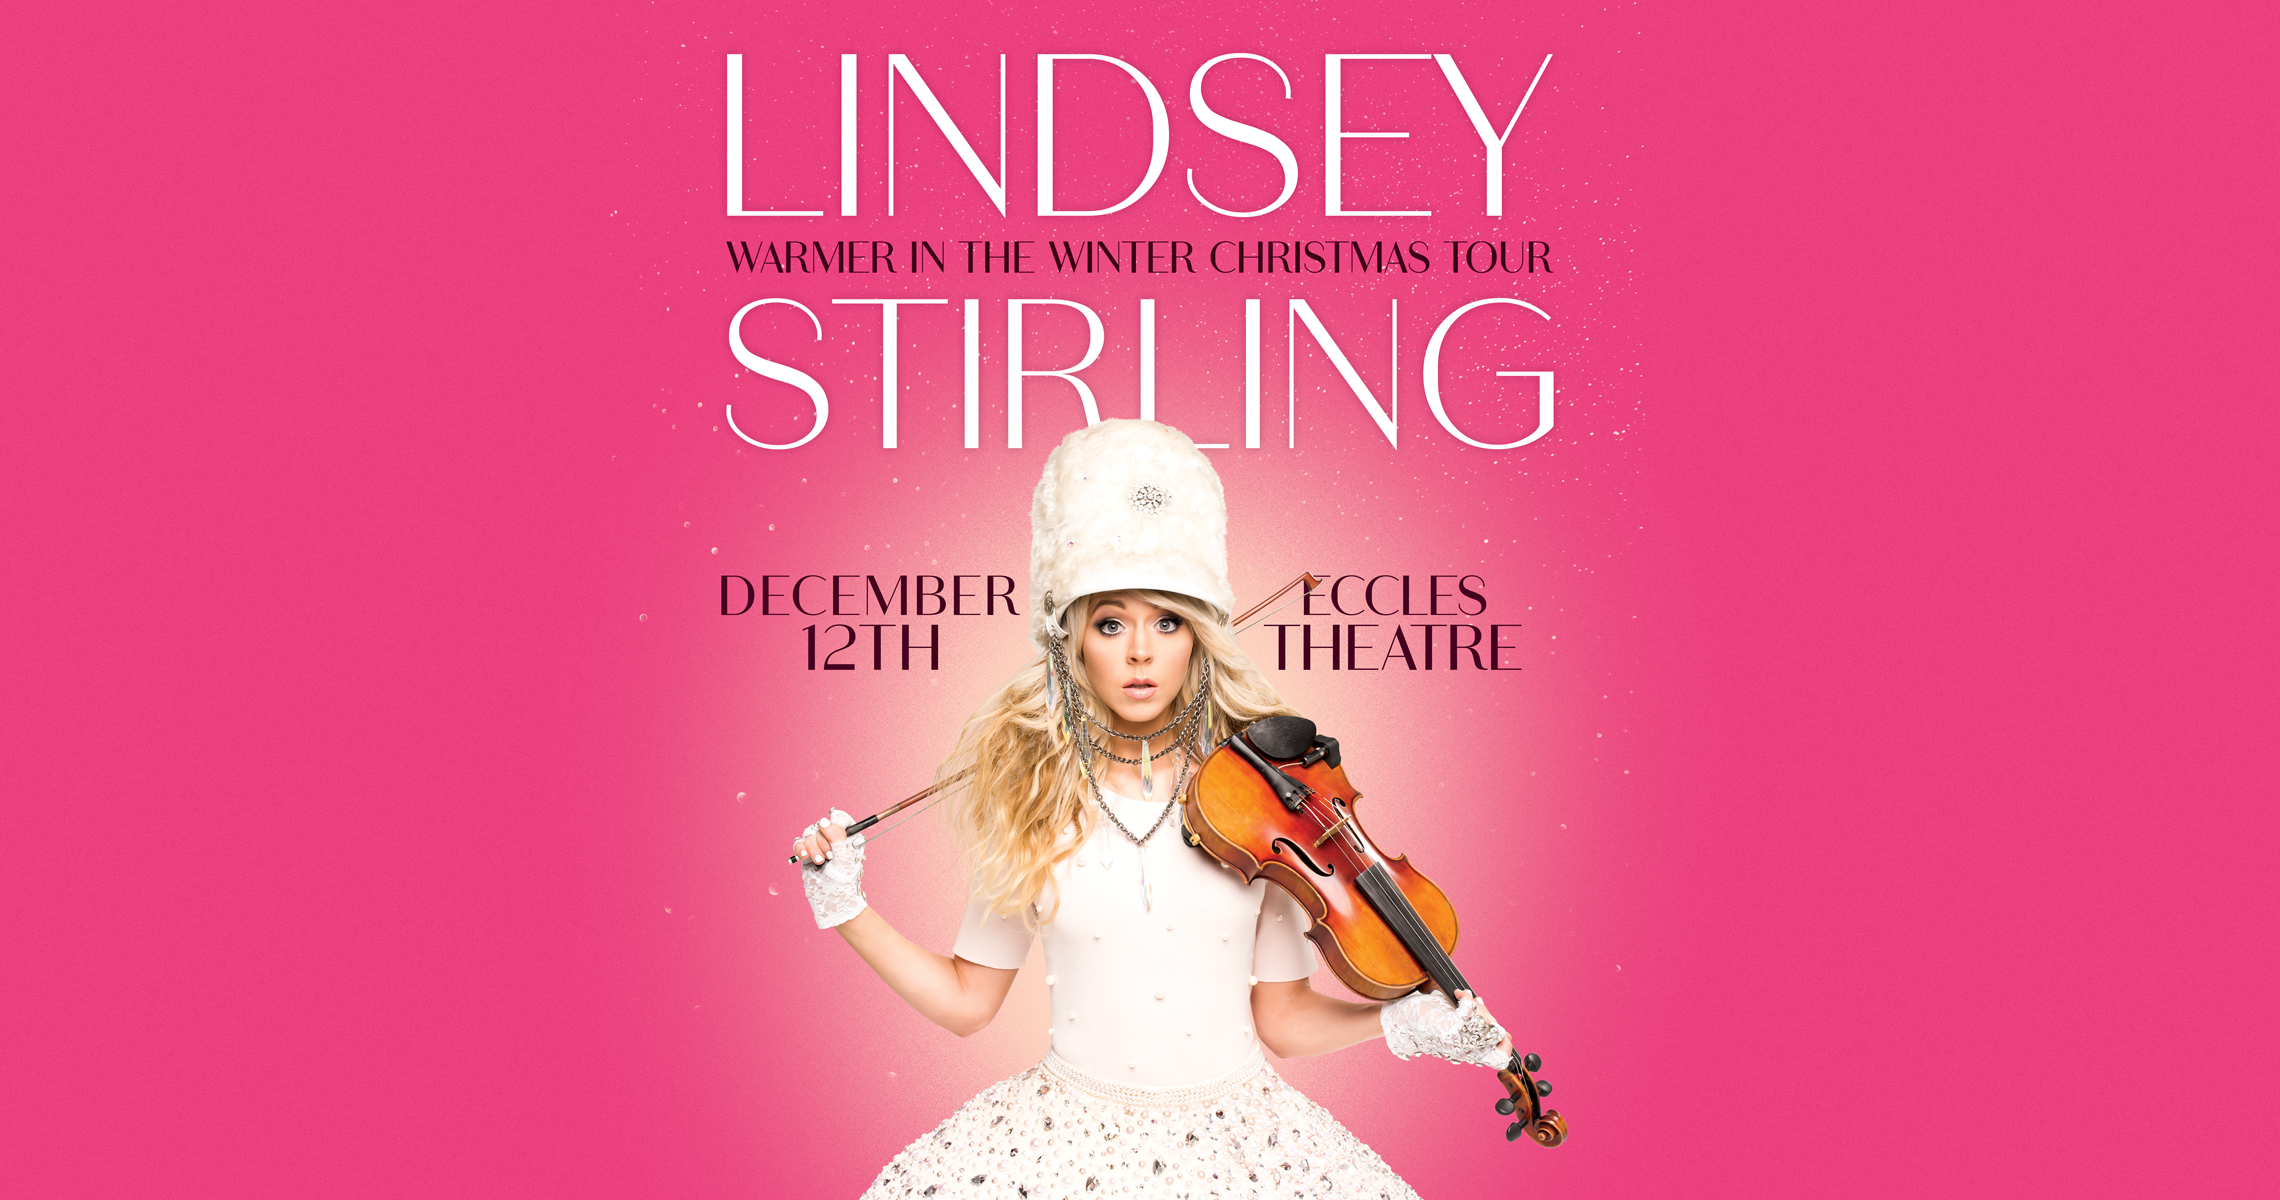 Lindsey Stirling Christmas Album.Lindsey Stirling Warmer In The Winter Christmas Tour Live